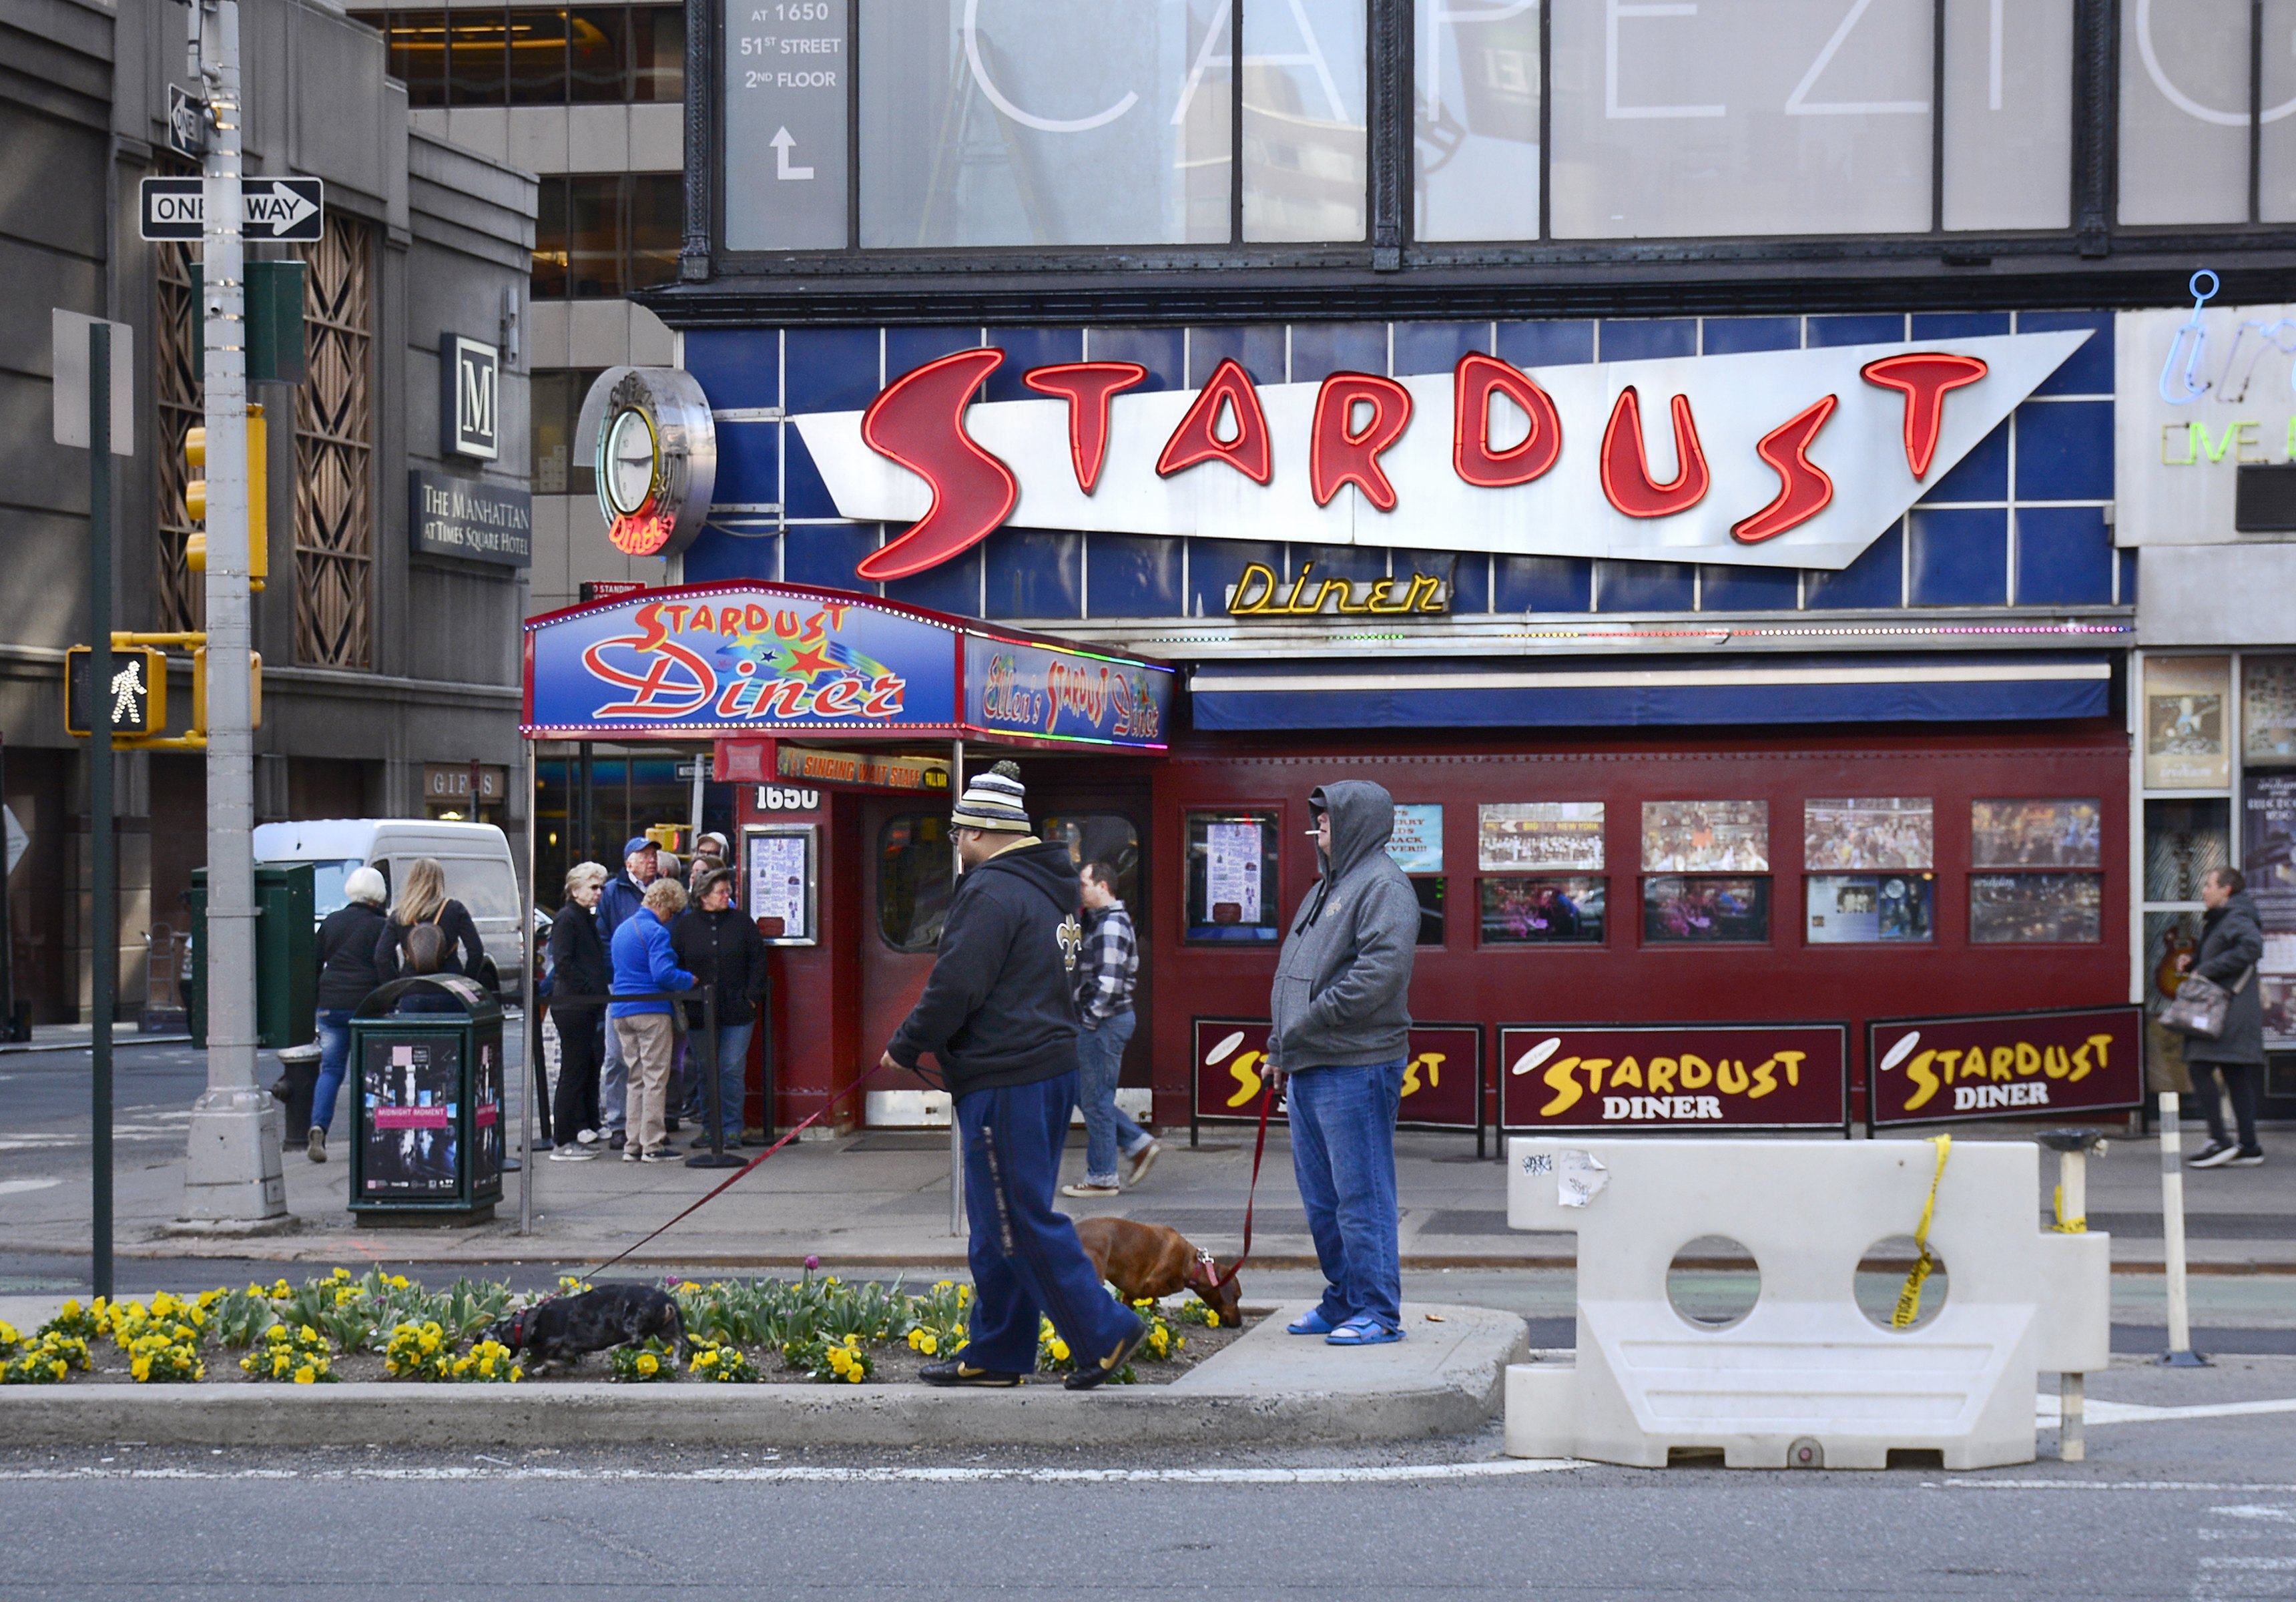 Two men walk their dogs in a flower bed as customers line up to enter the 1950s-themed Ellen's Stardust Diner on Broadway in New York City's Theater District.